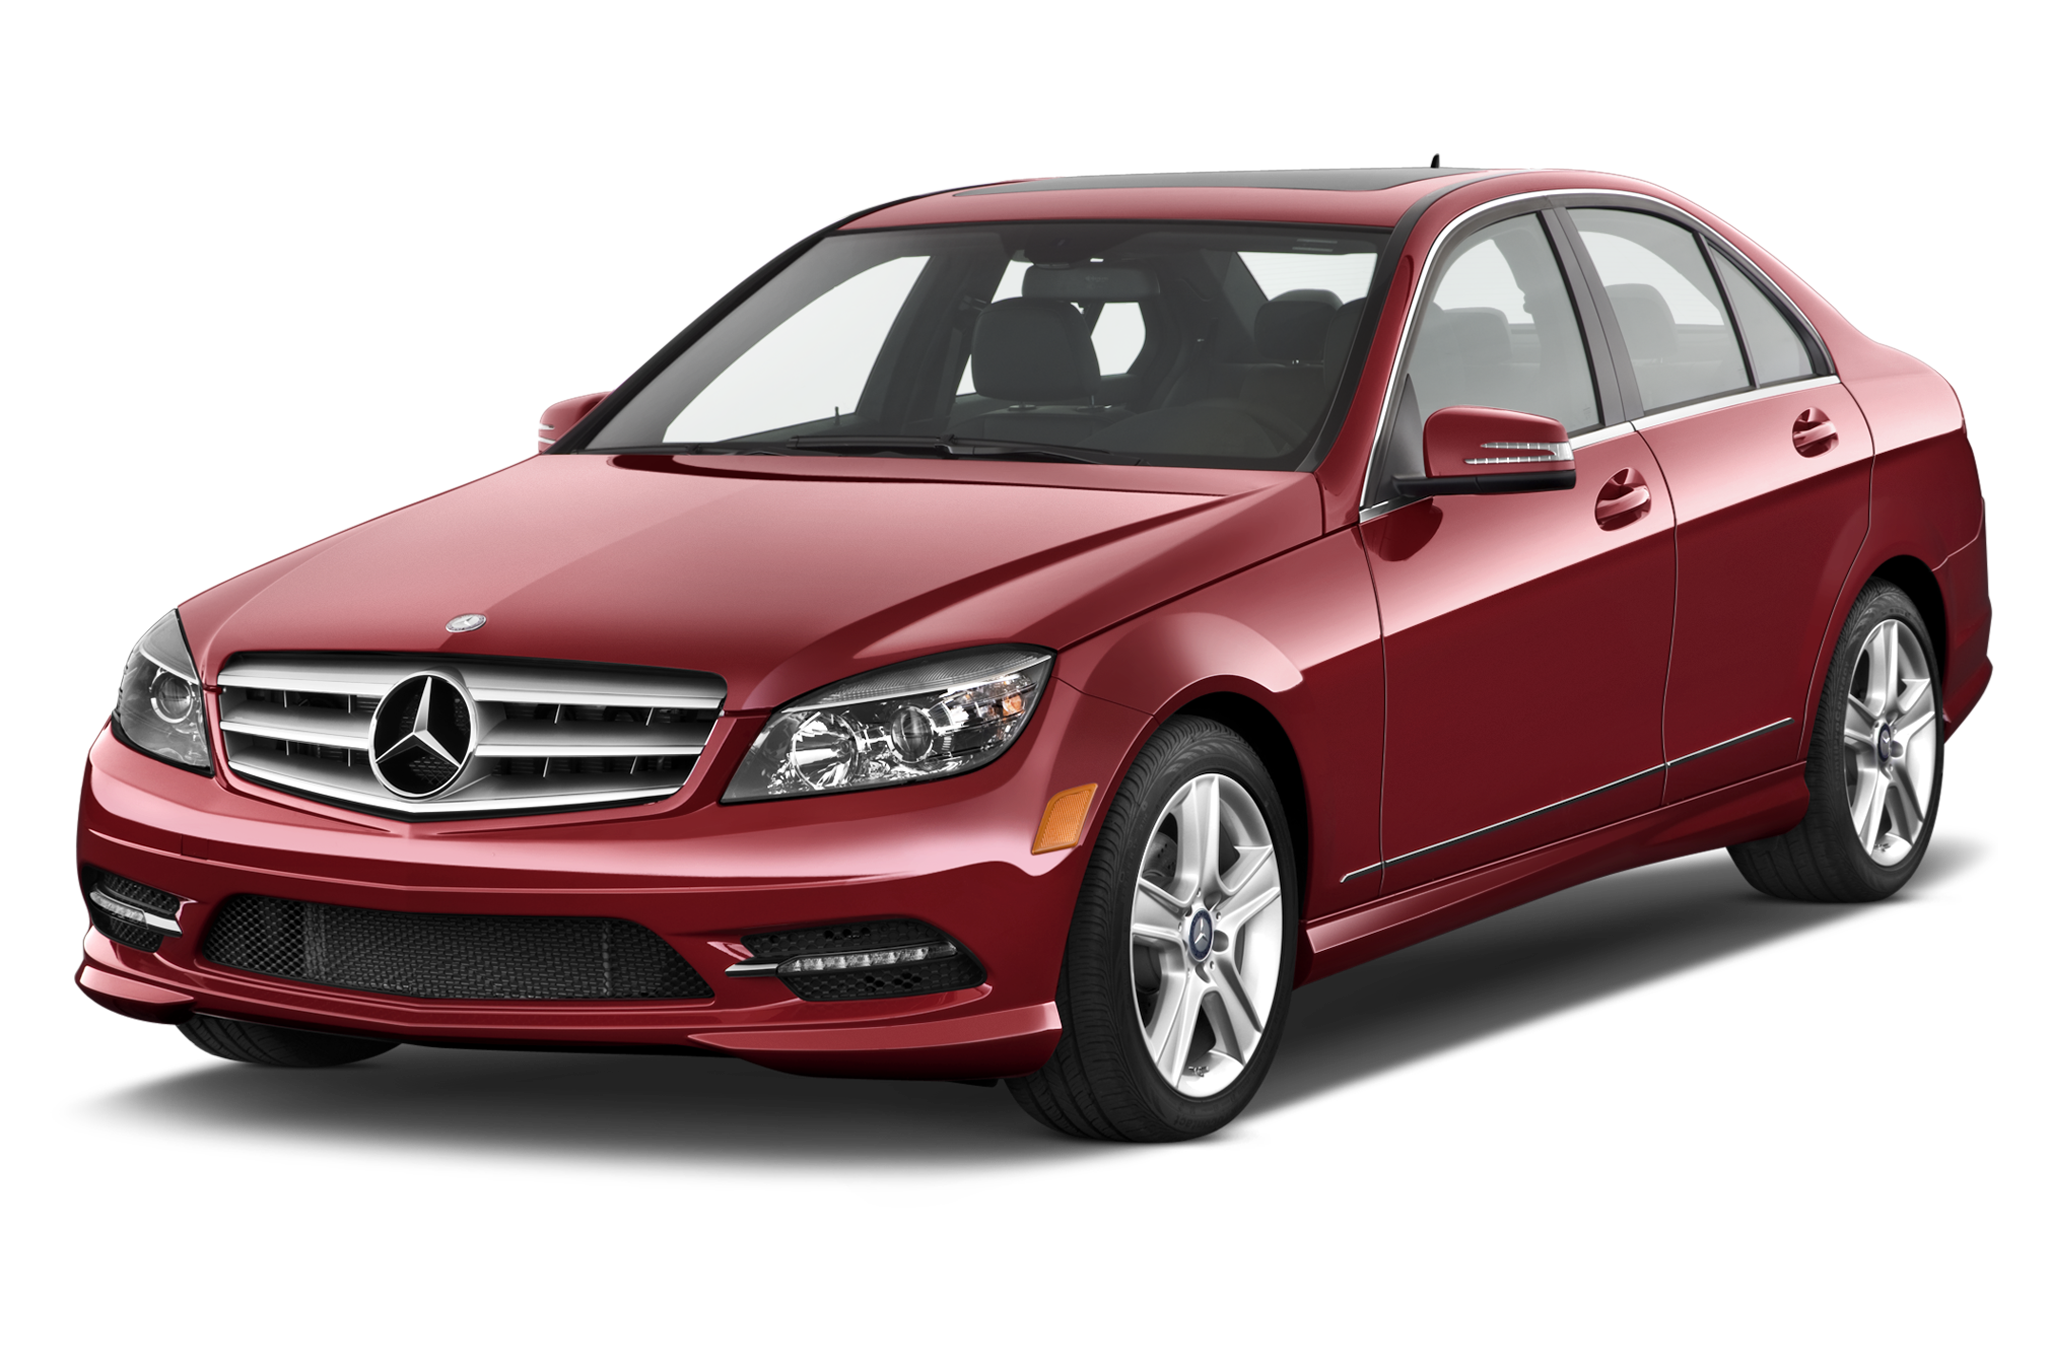 2011 mercedes benz c class c300 sport specs and features for Mercedes benz c300 horsepower